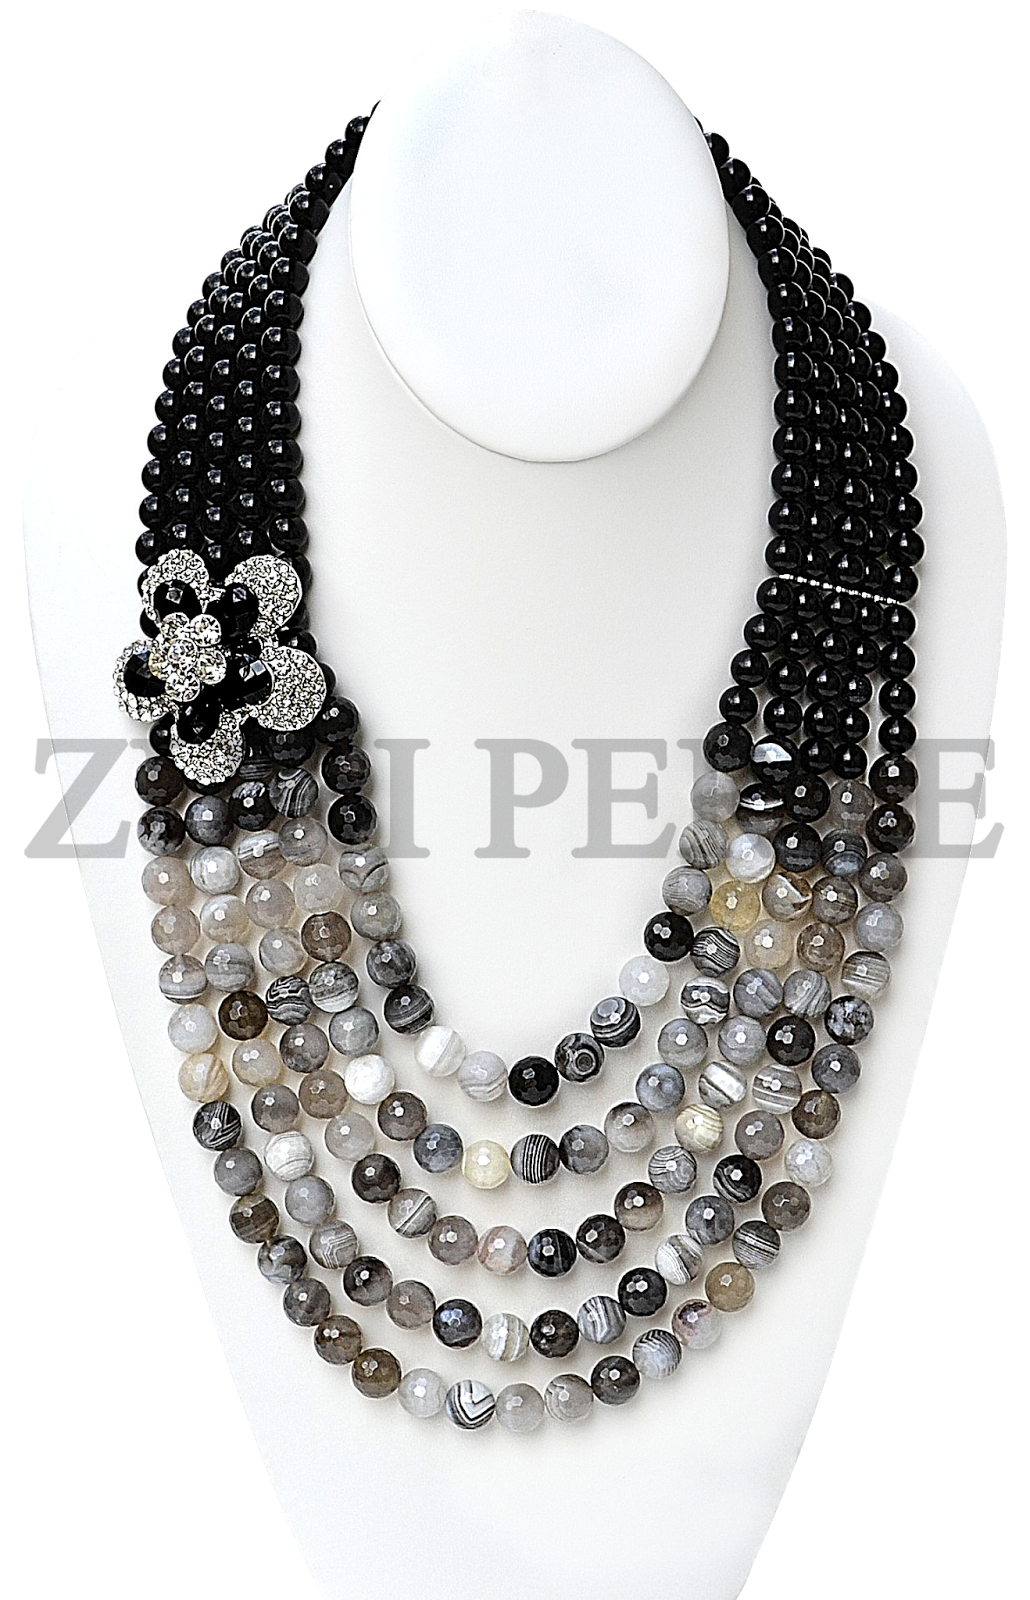 BLACK AND WHITE AGATE WITH BLACK ONYX BEADS